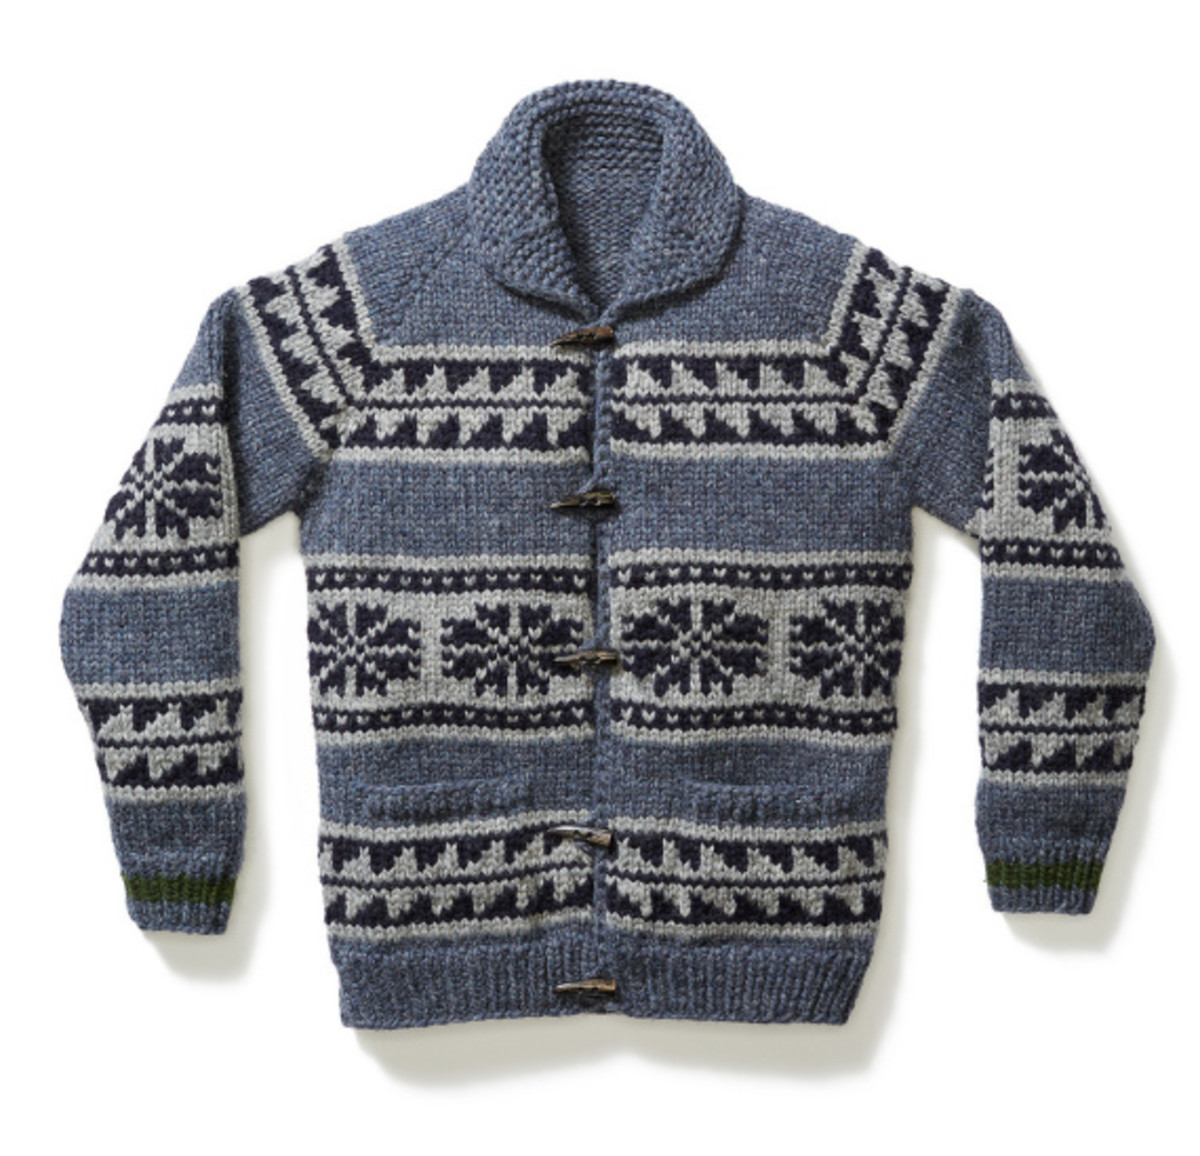 filson-fall-winter-2014-cowichan-knit-collection-02